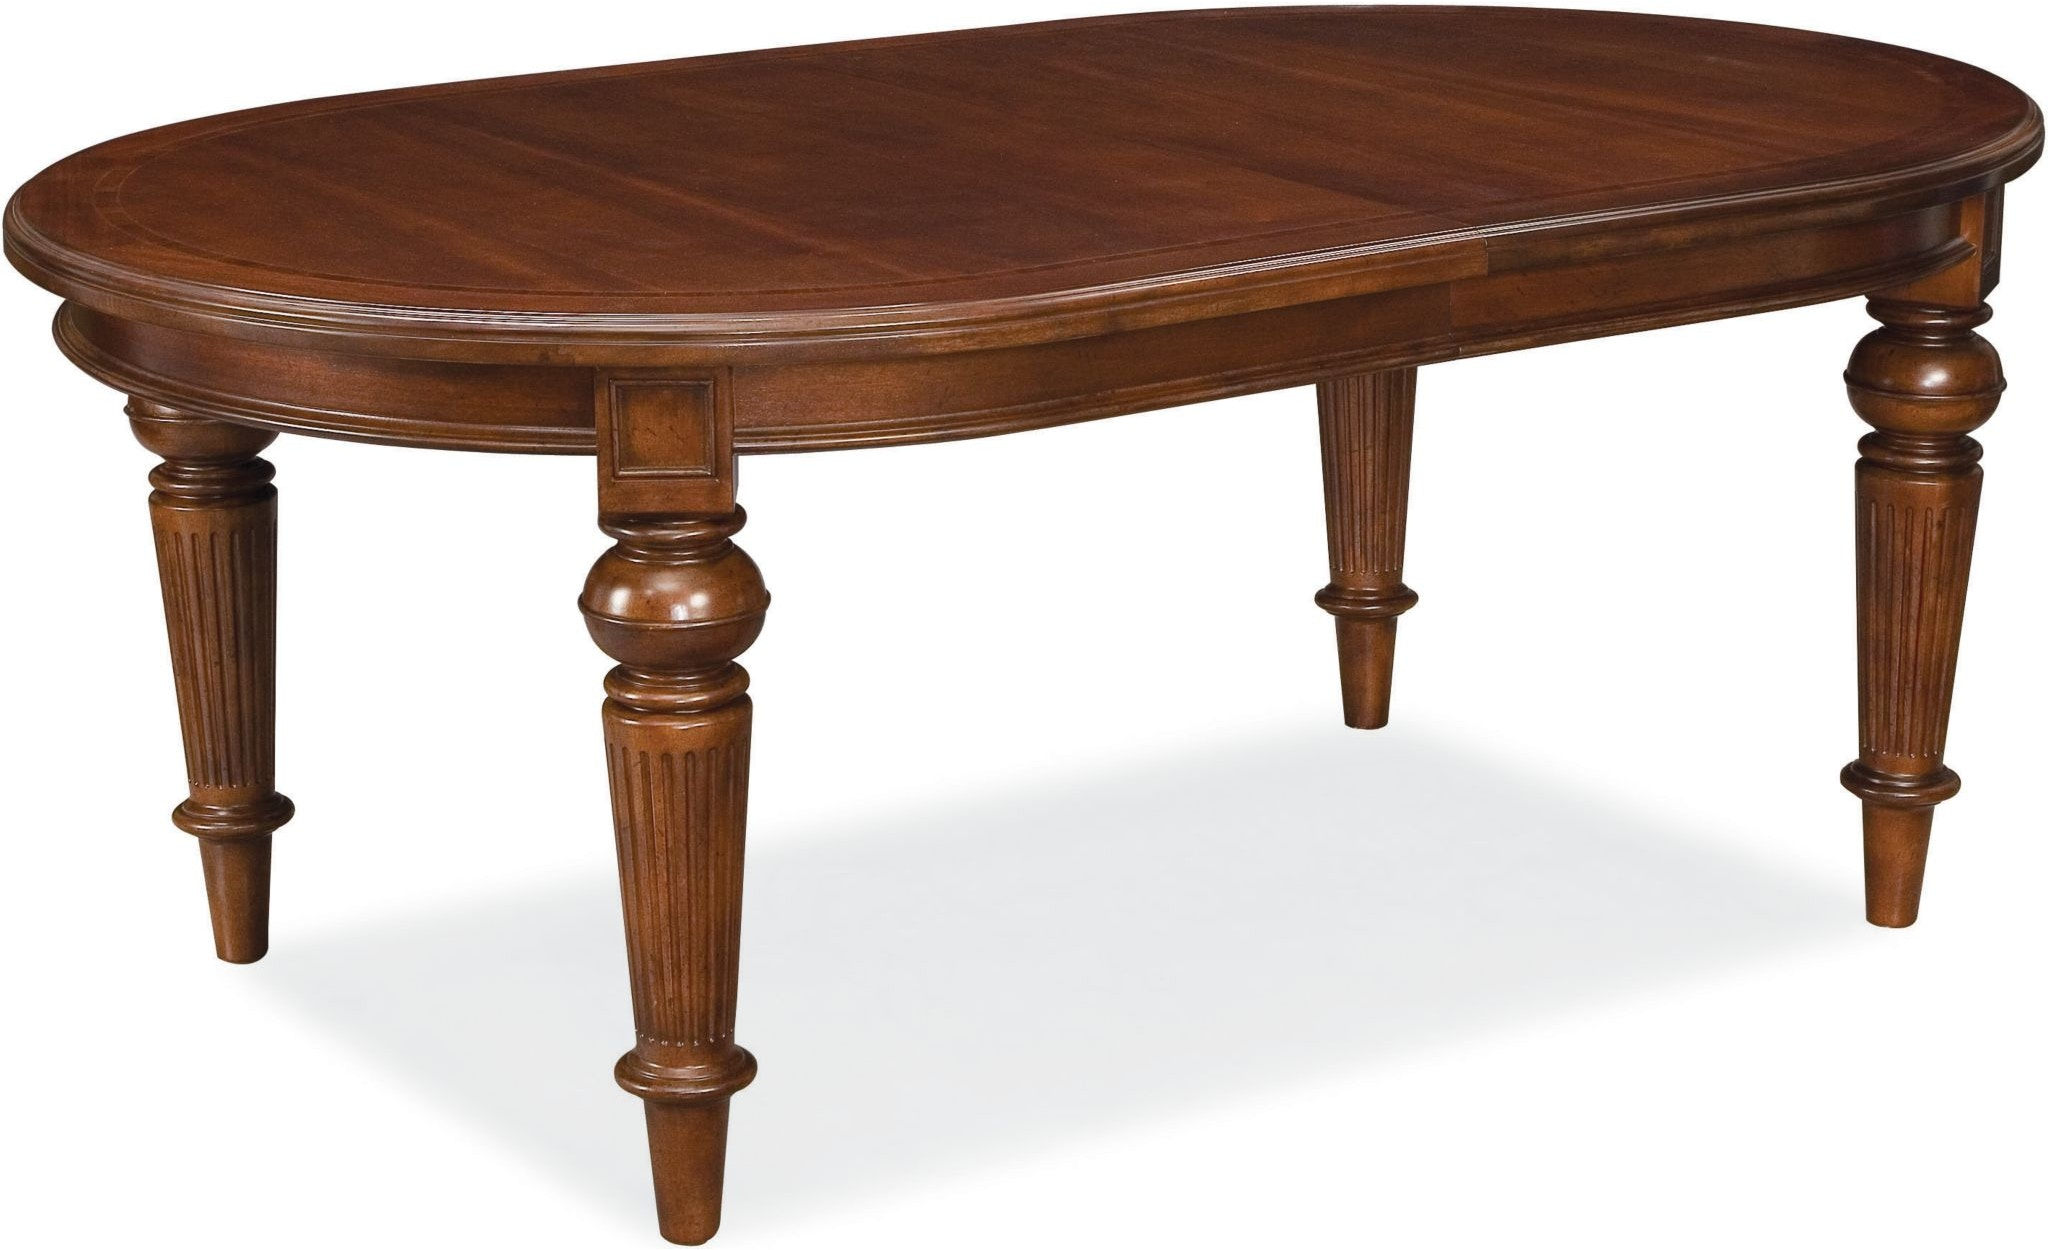 Thomasville Dining Room Oval Dining Table 43421 762  : 43421 762 from www.gladhillfurniture.com size 1024 x 768 jpeg 40kB